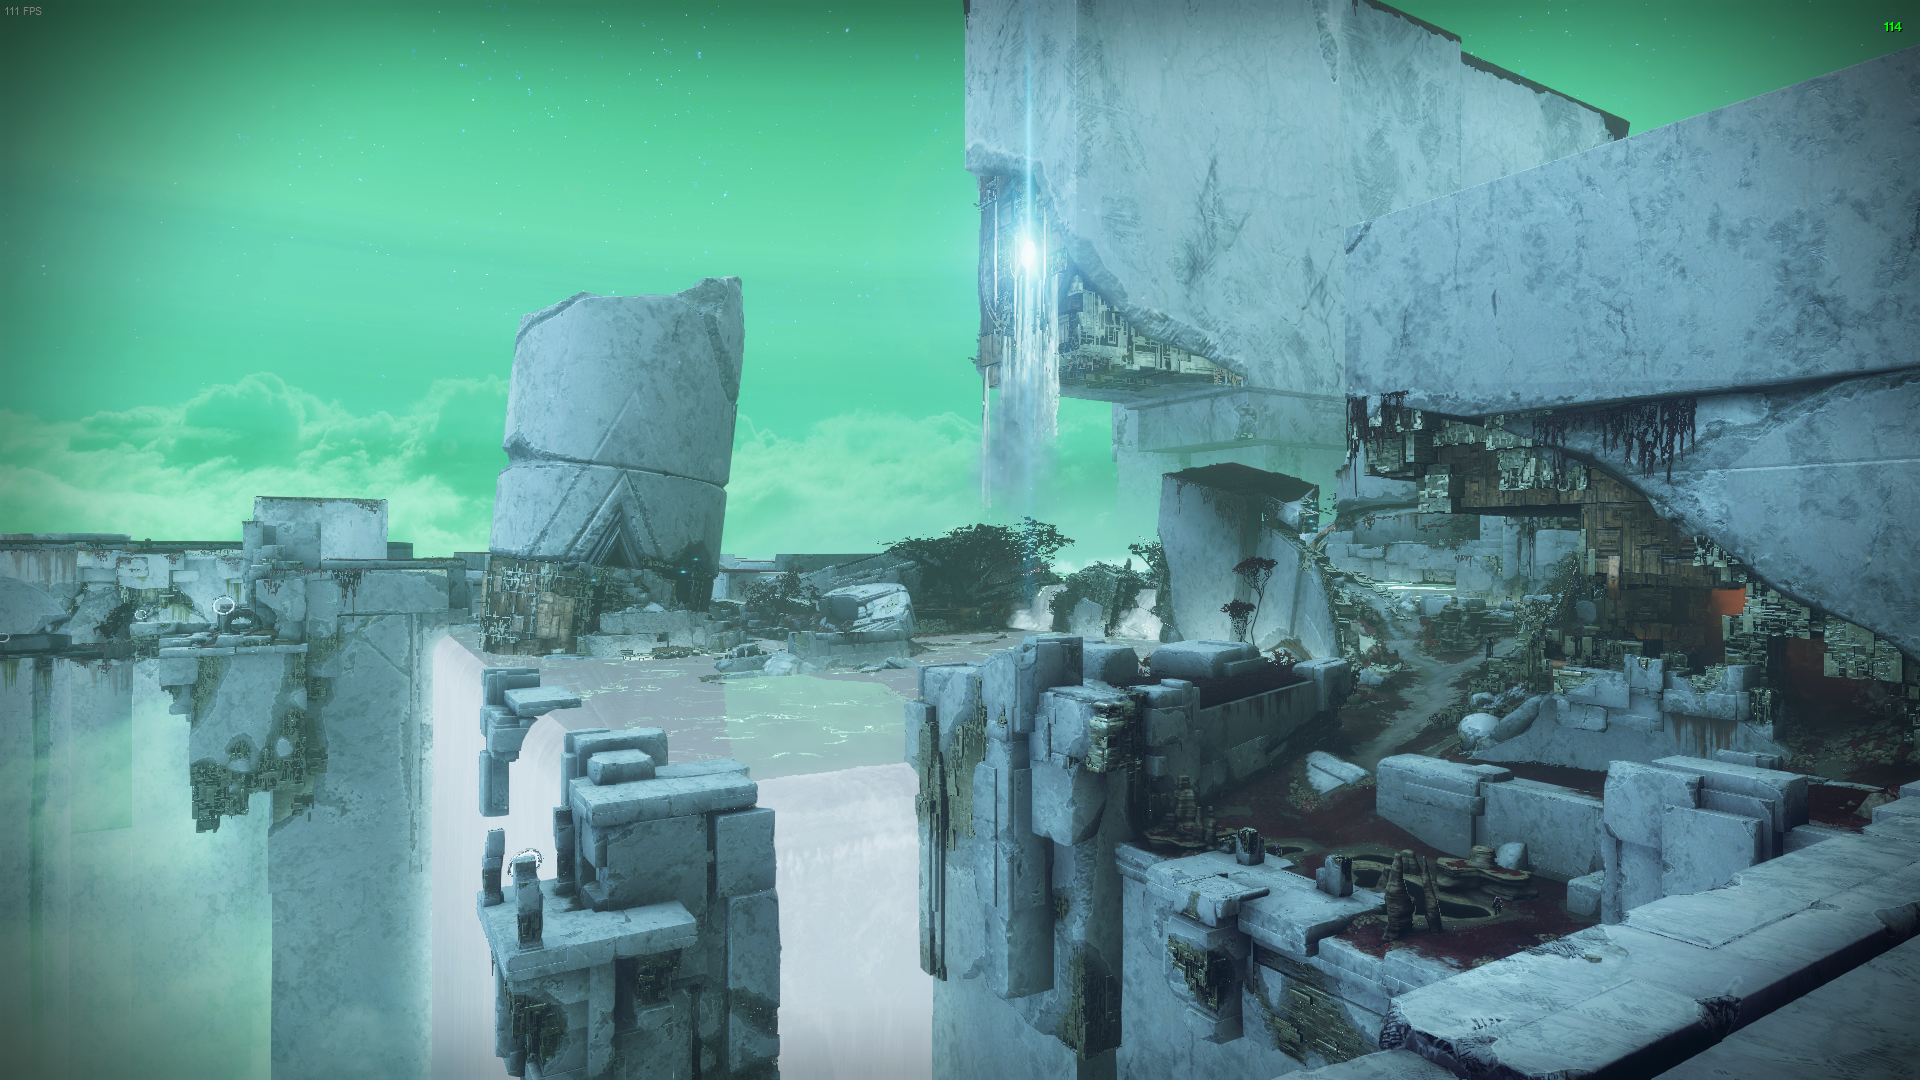 """A view from one of the Nessus spawn points complete with the Vex """"milk"""" waterfall, the crumbles Vex tower, and another Vex structure in the distance."""